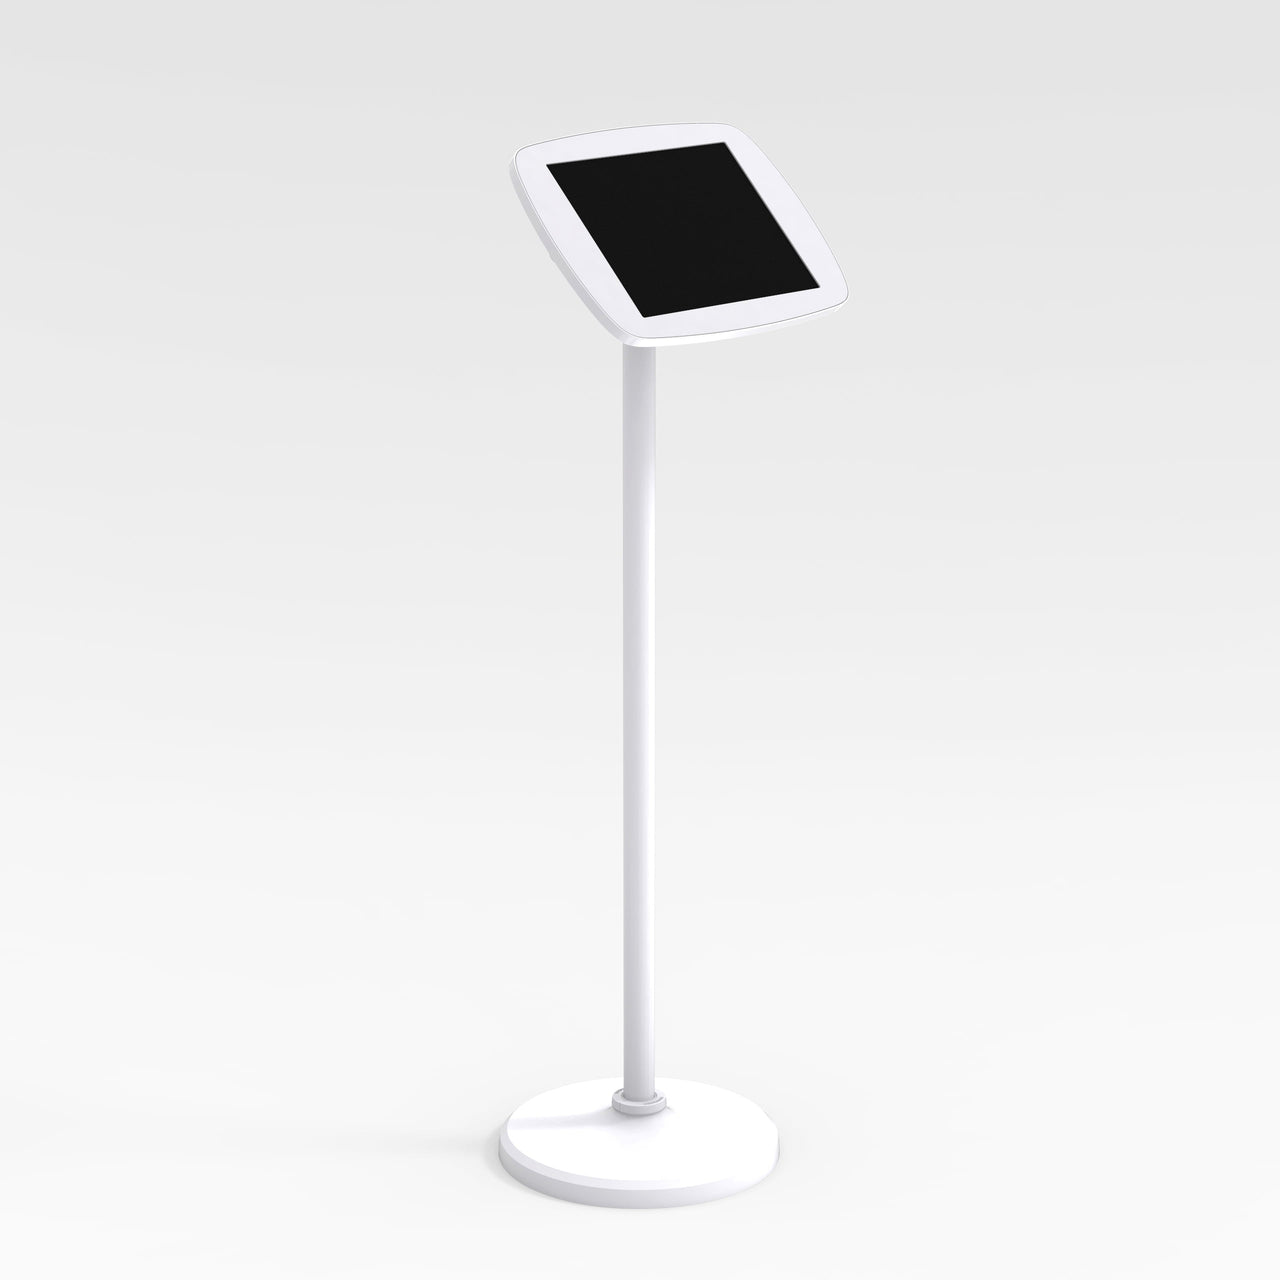 Bouncepad Floorstanding - A secure tablet & iPad floor stand in white.